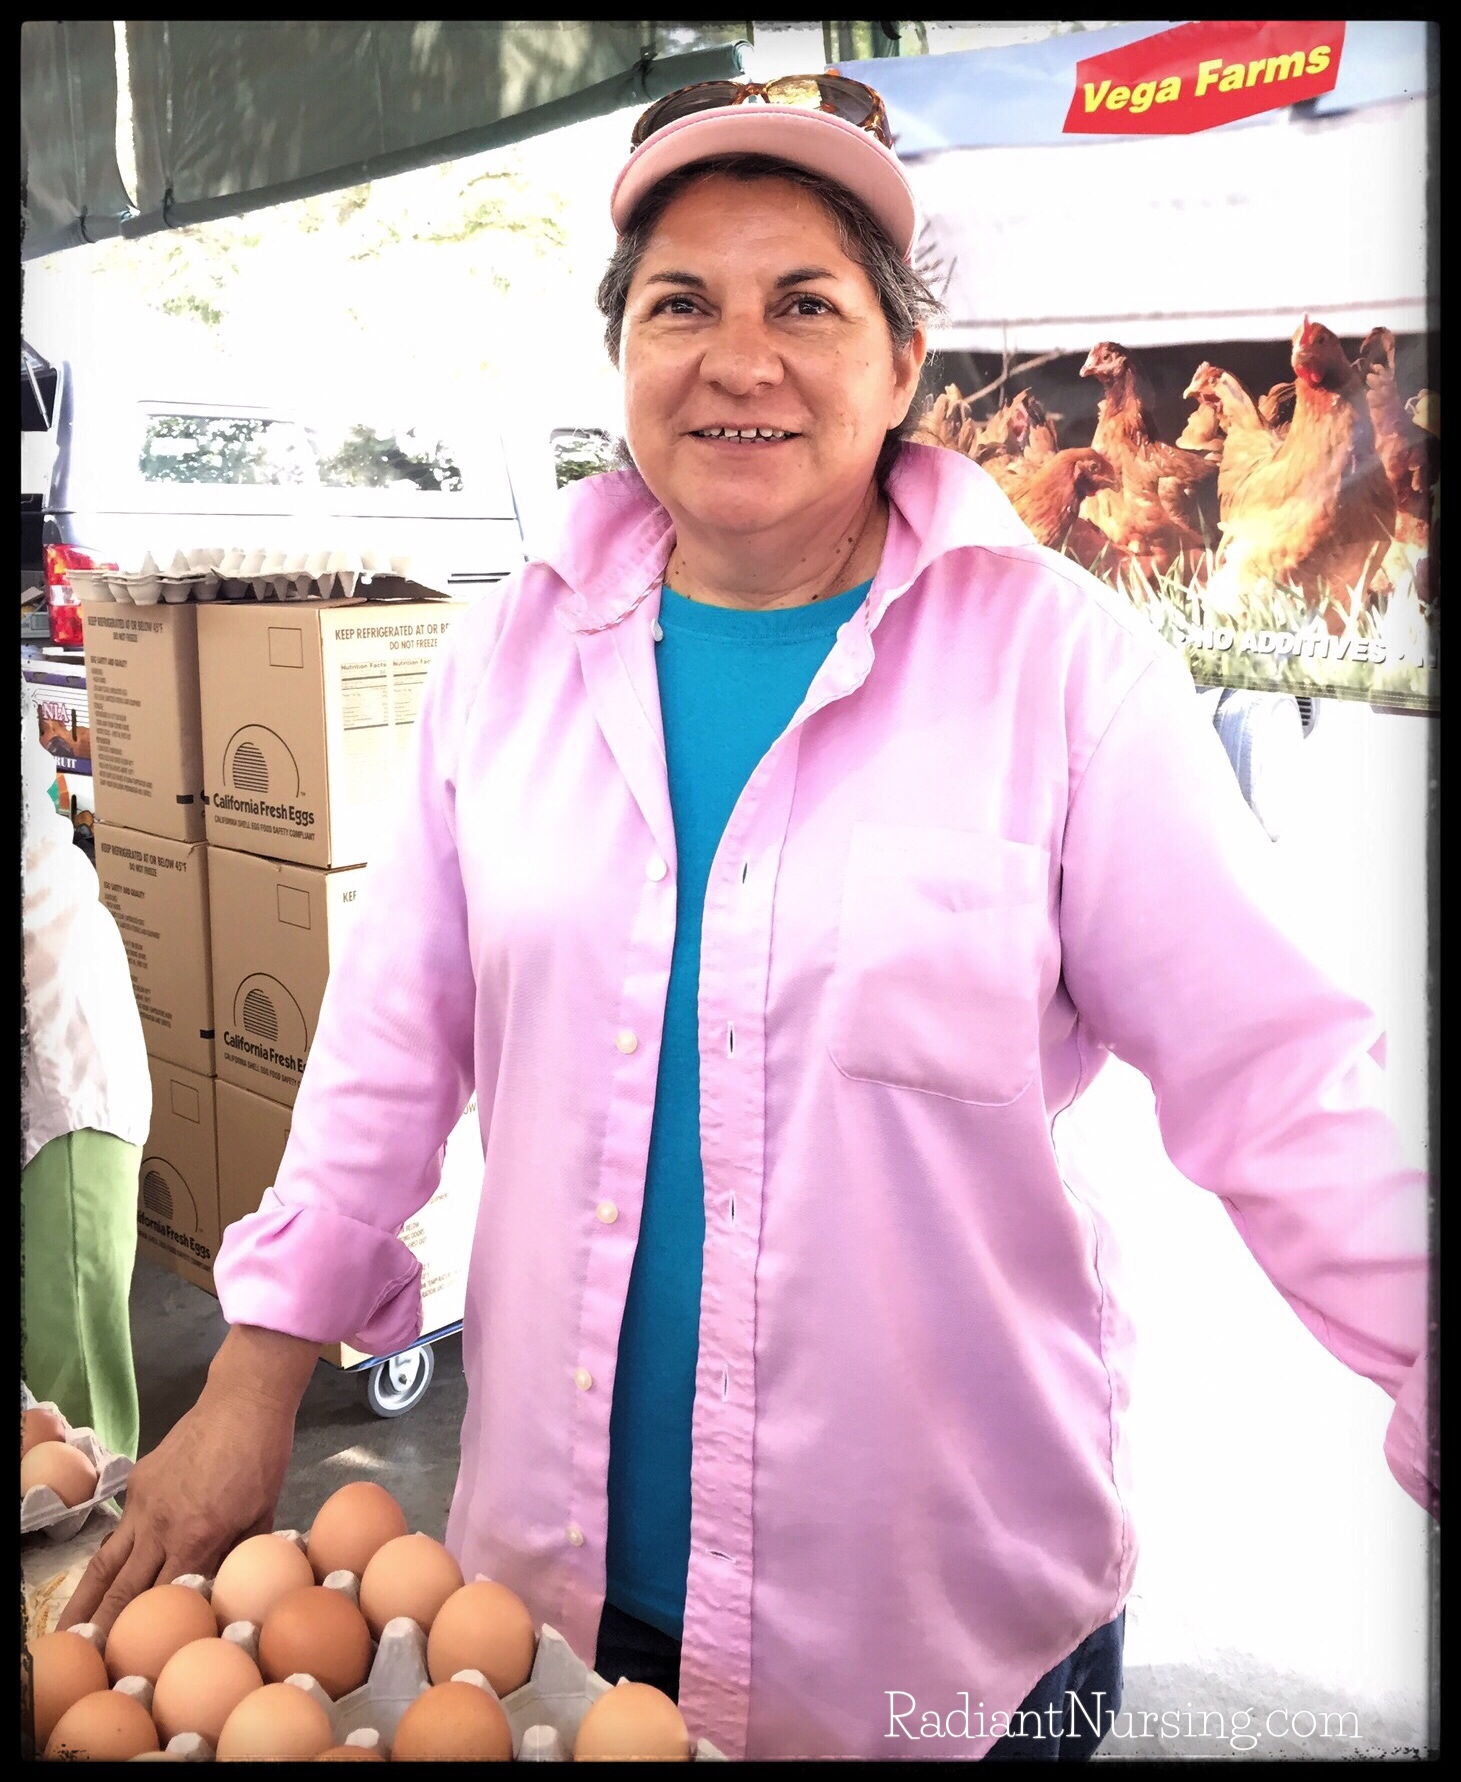 Teresa sells eggs at the farmers market. I buy from her all the time.